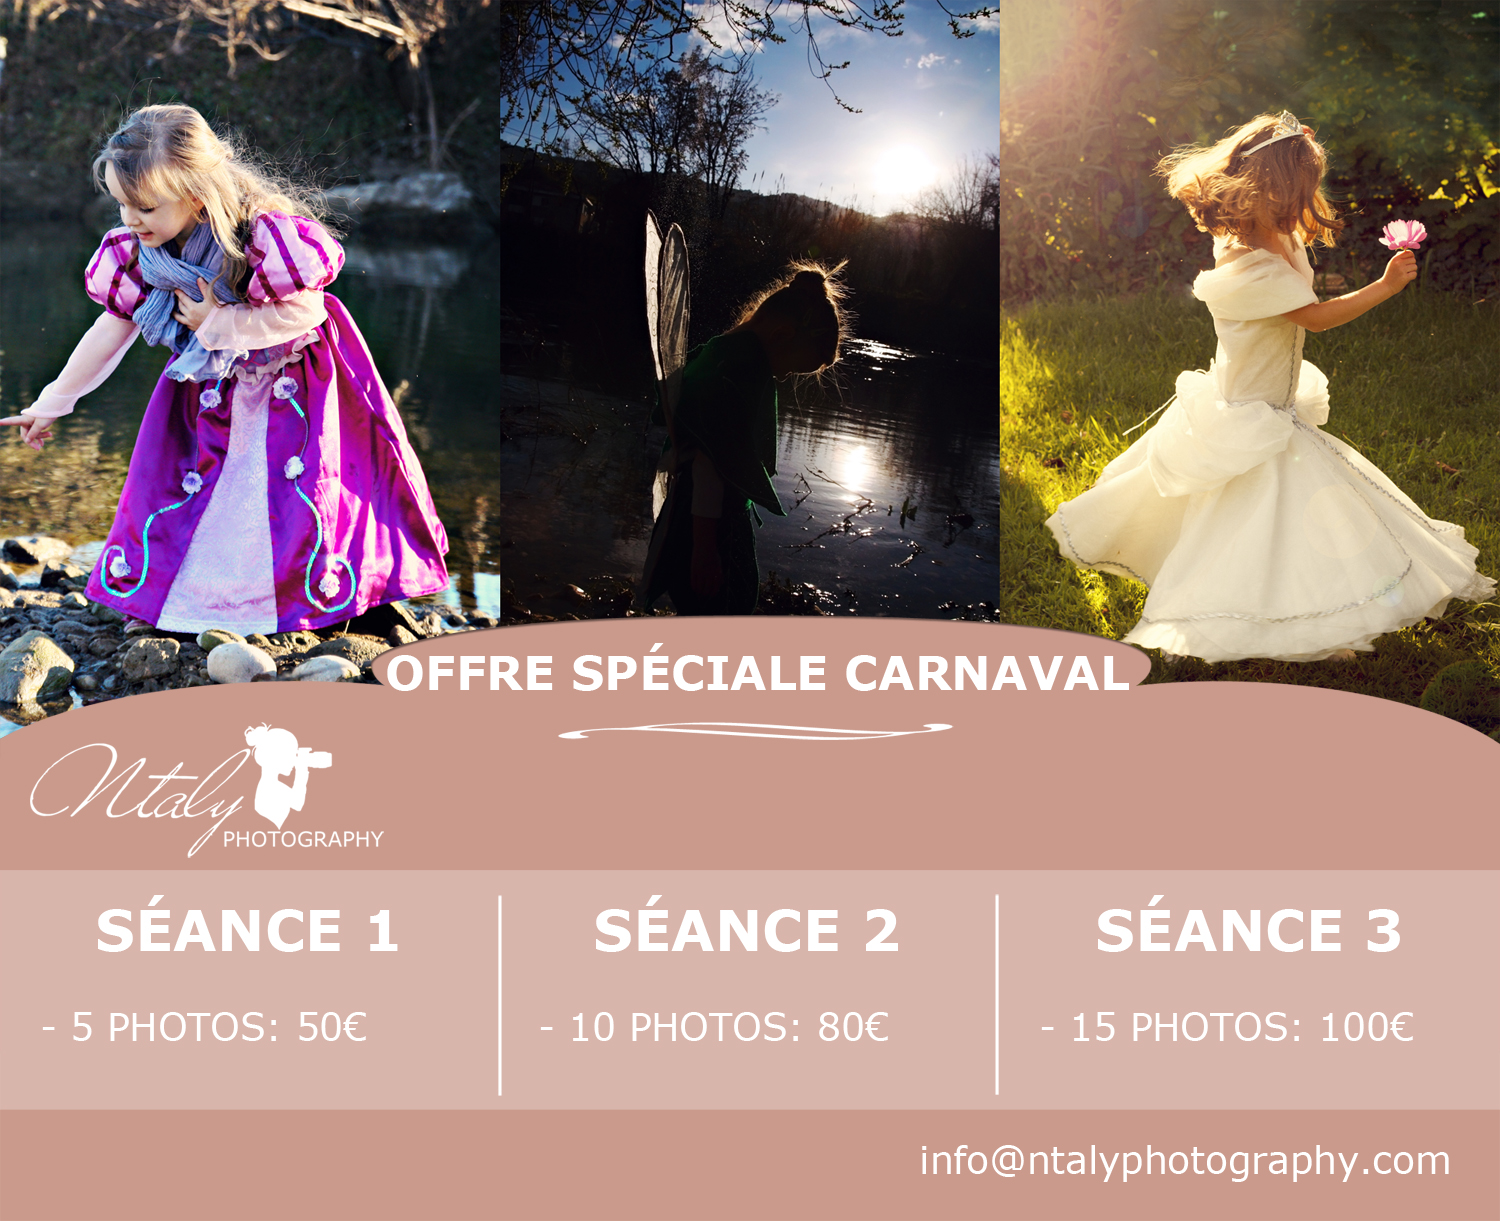 offre speciale carnaval 2015 - 2